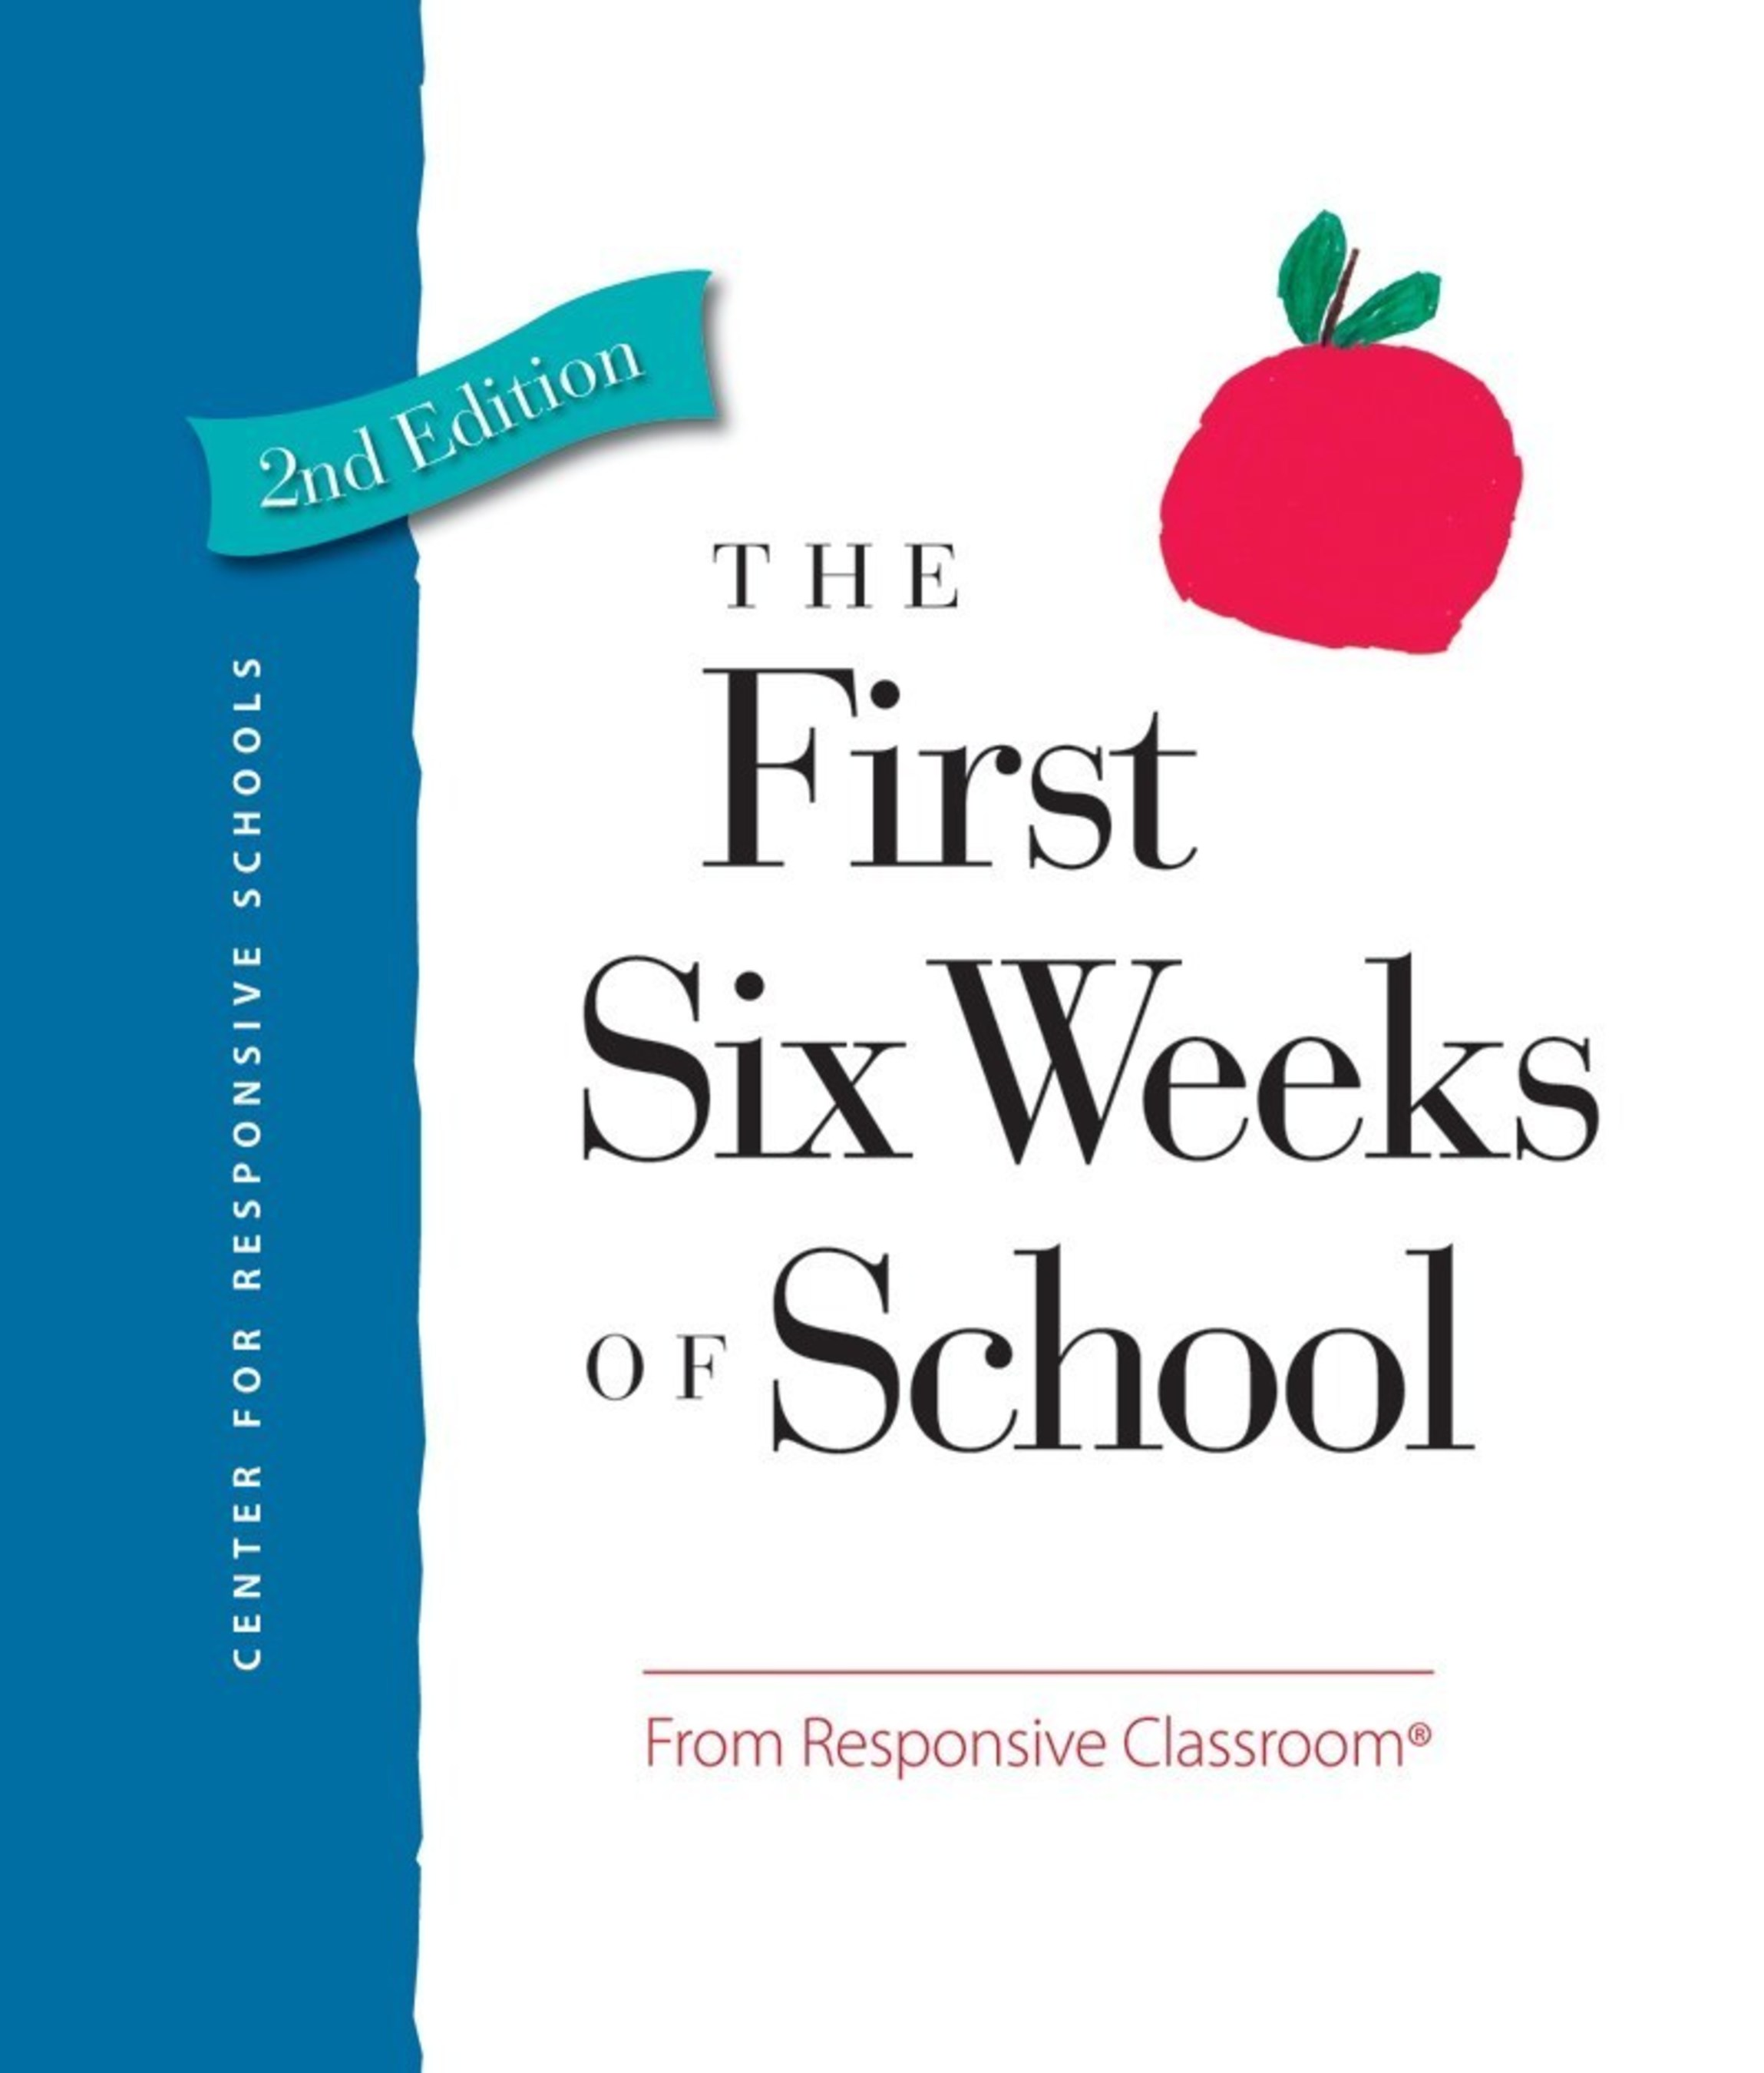 This practical guide from Responsive Classroom helps K-6 teachers use the crucial early weeks of school to lay the groundwork for a productive year of learning.